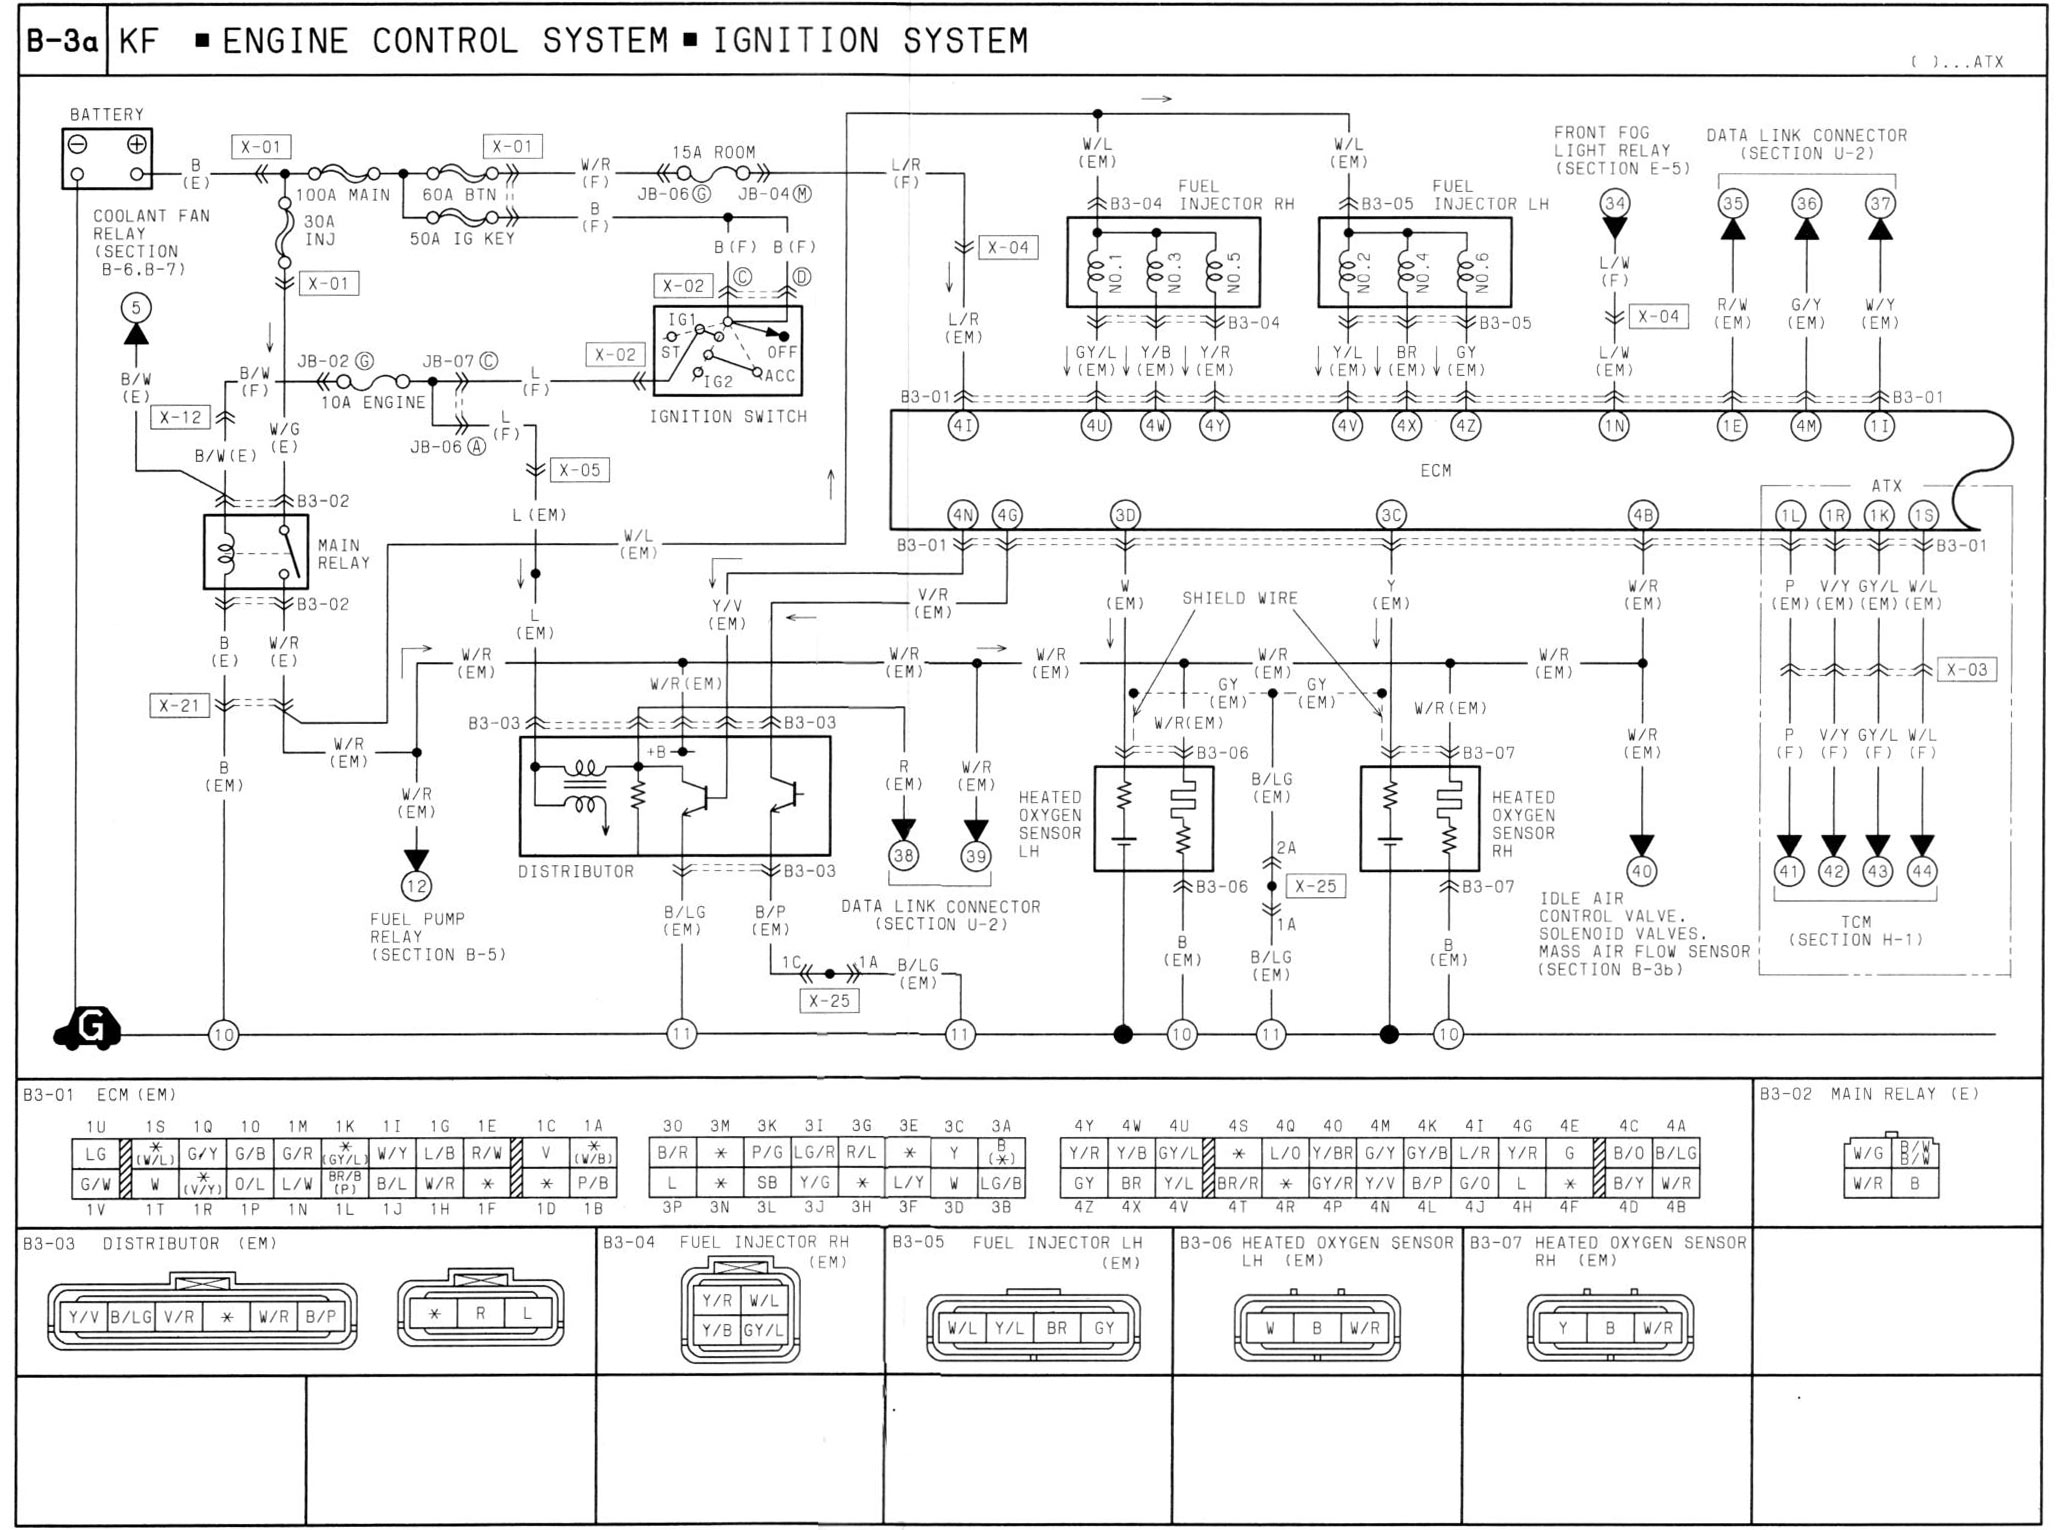 Mazda 323 Fuse Diagram Wiring Schematics 1990 B2200 Box 94 V6 Lantis Engine Bay Astinagt Forums 3